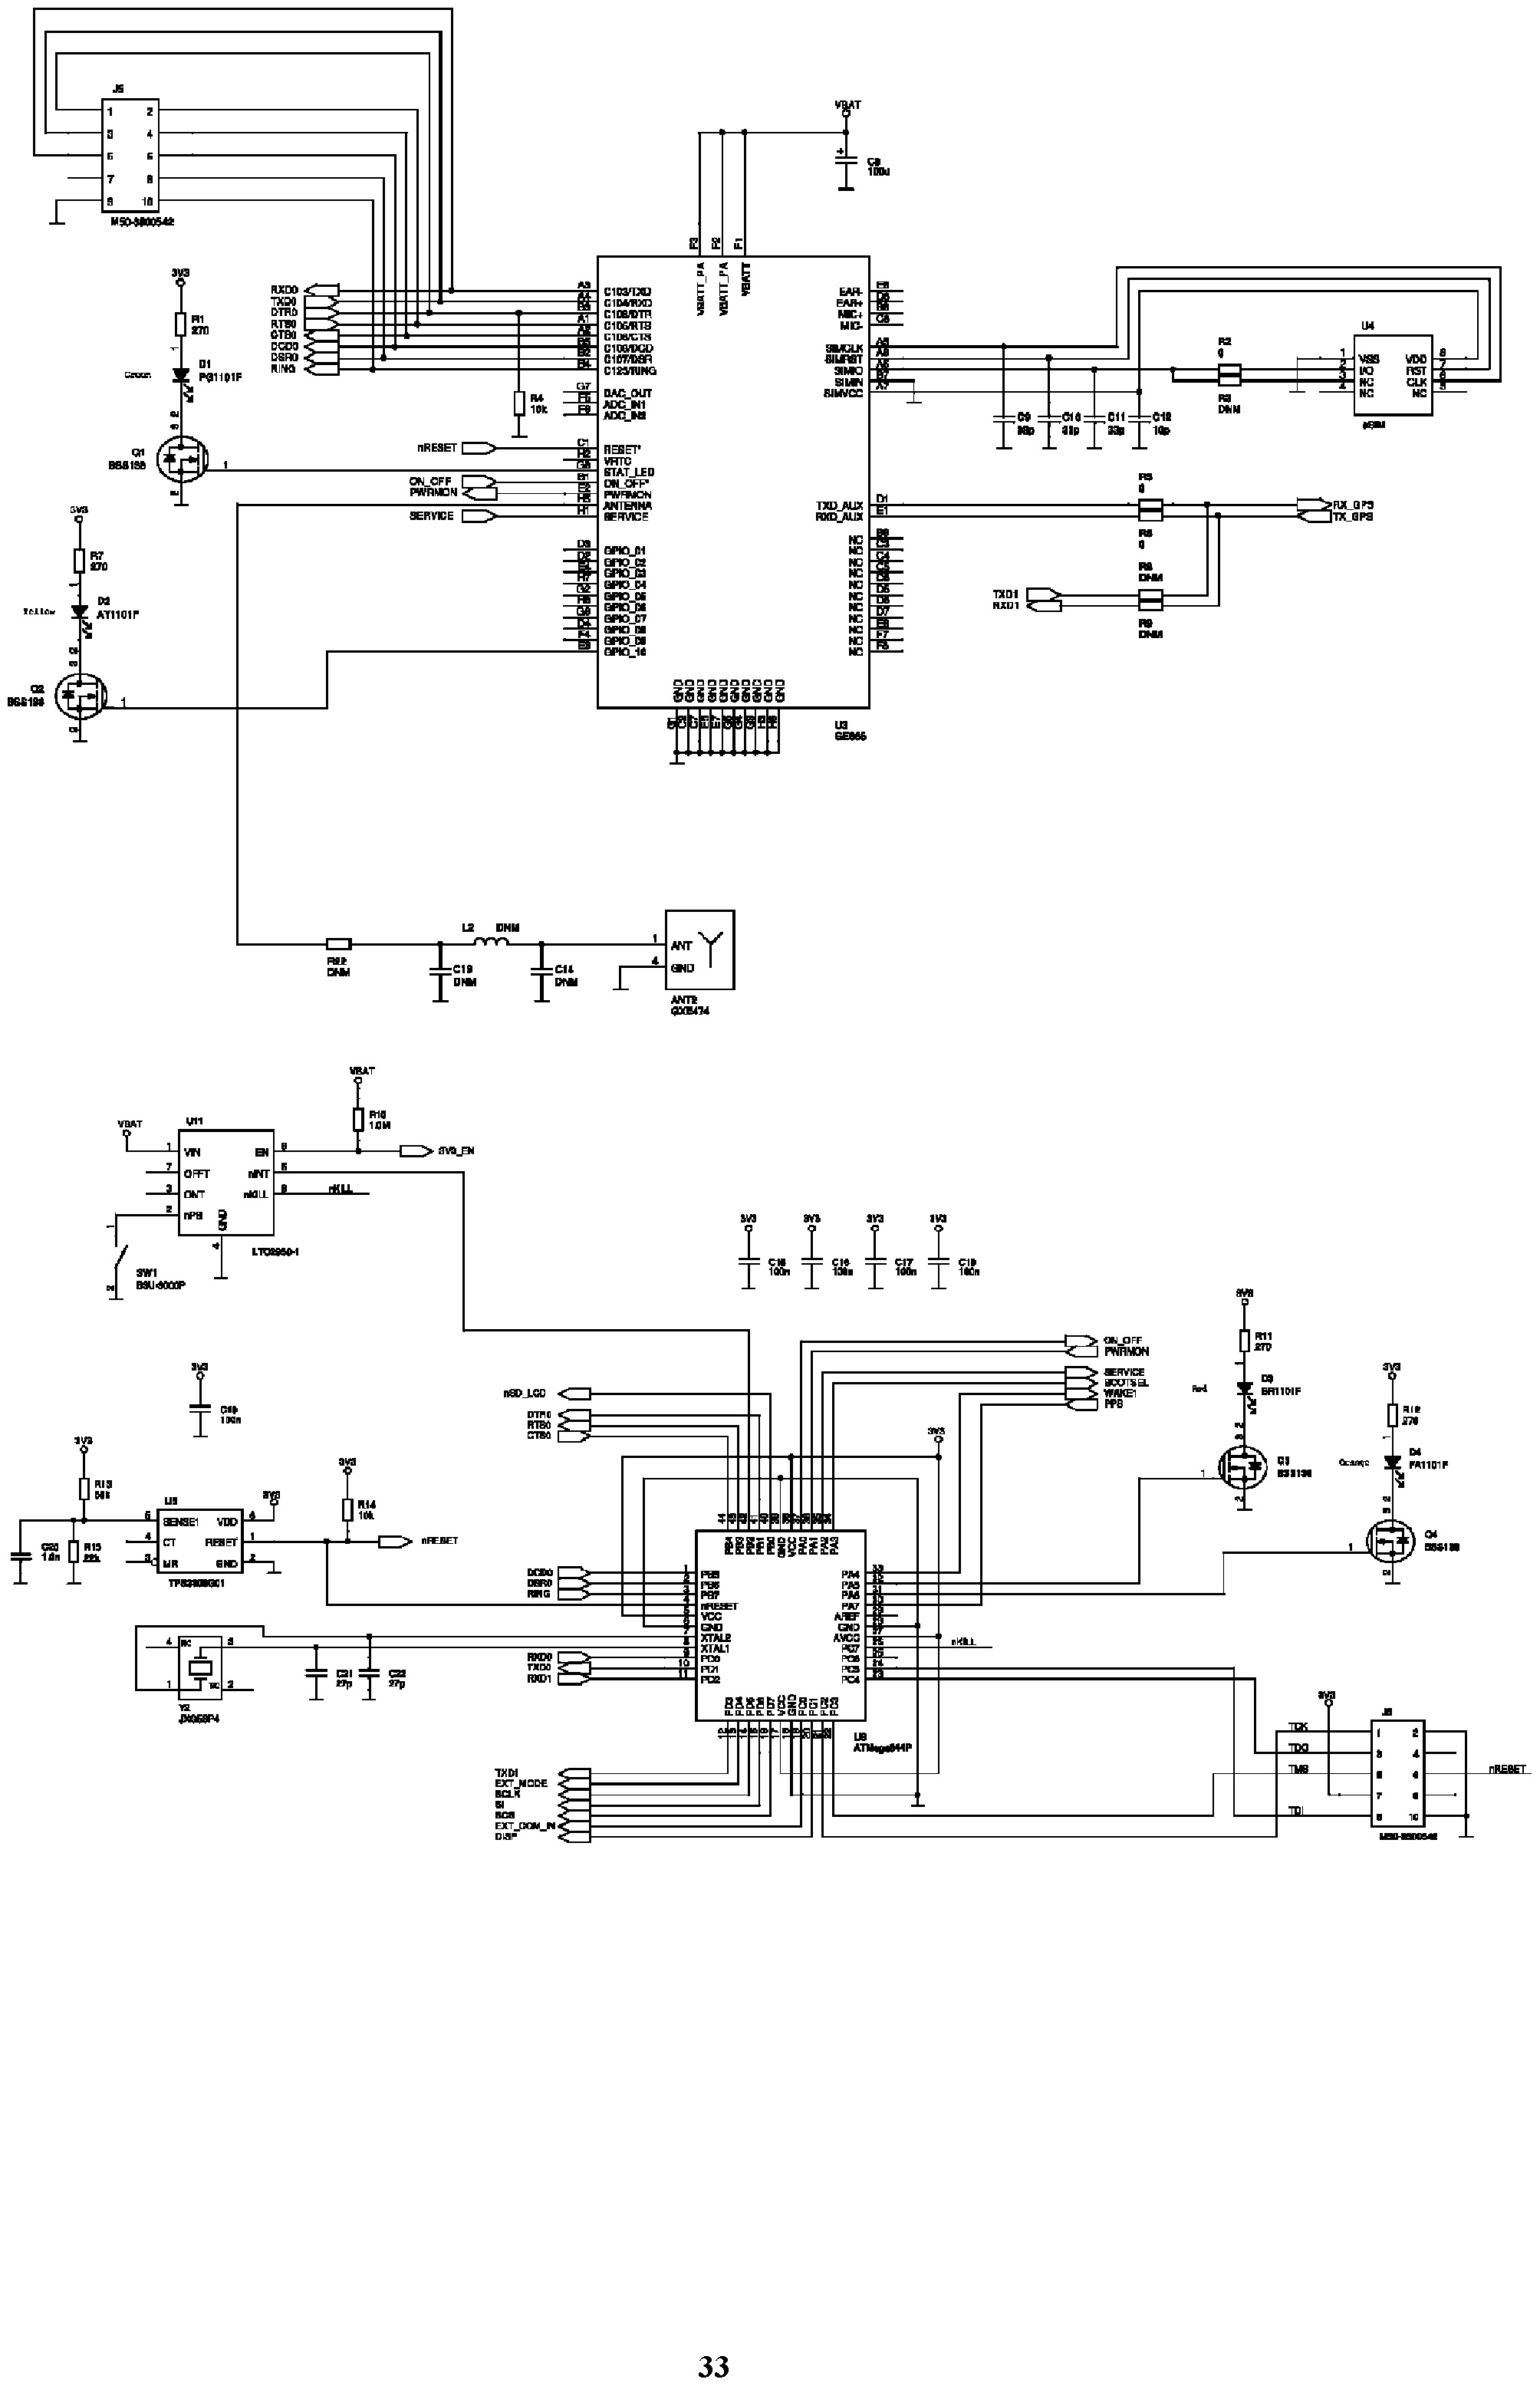 schematic of a solar tracker in operation